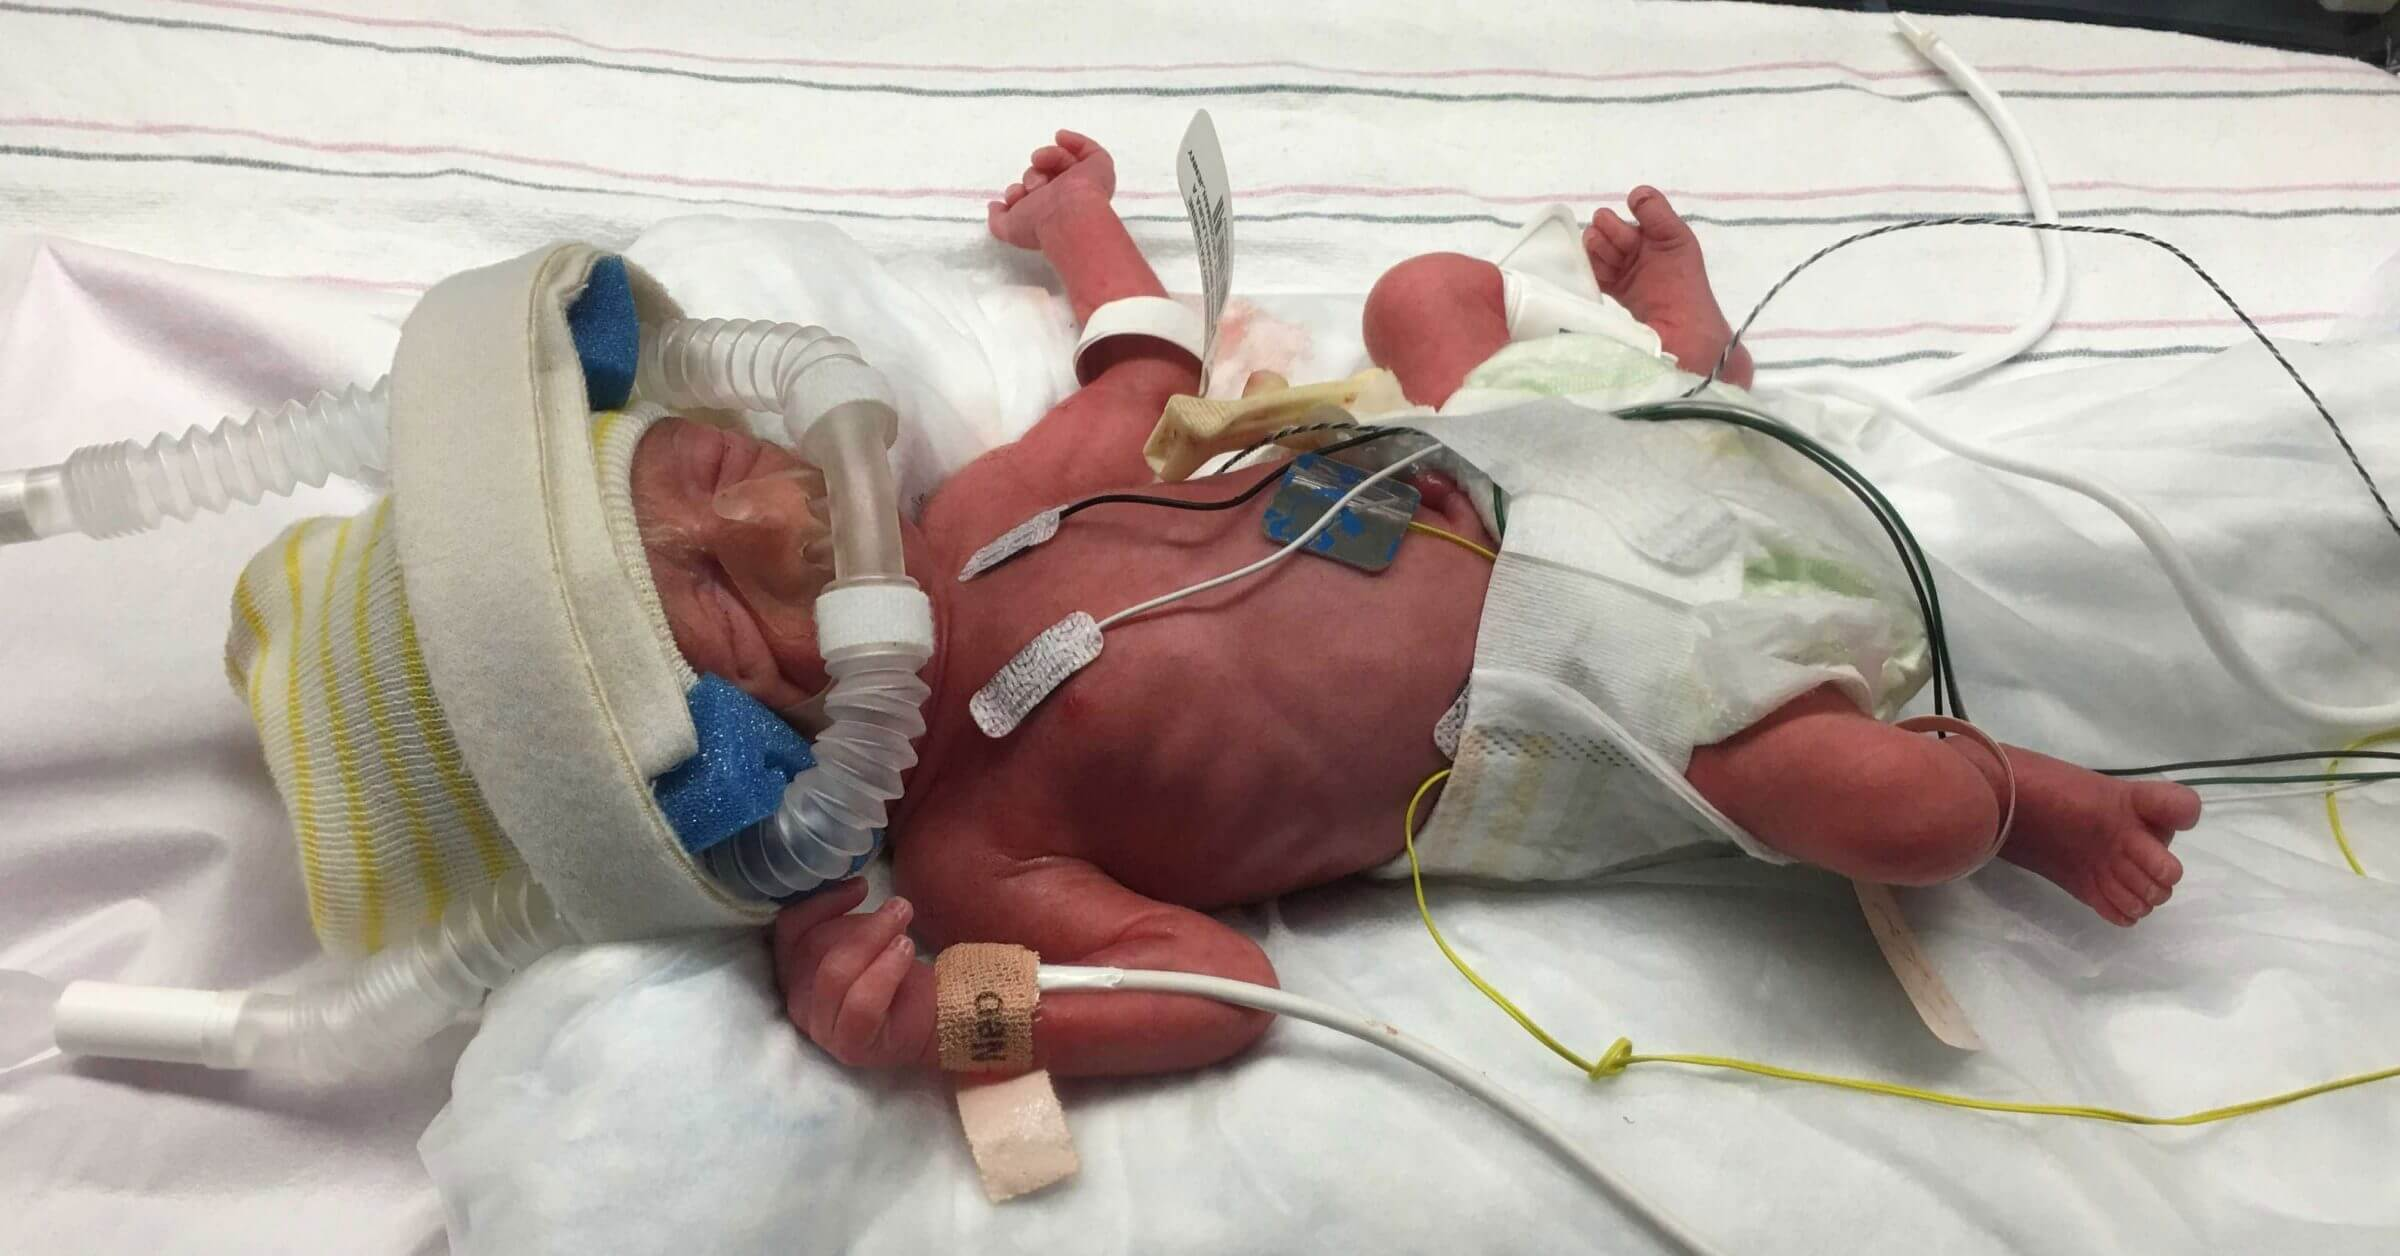 The journey of our preemie in the NICU of Northside Hospital